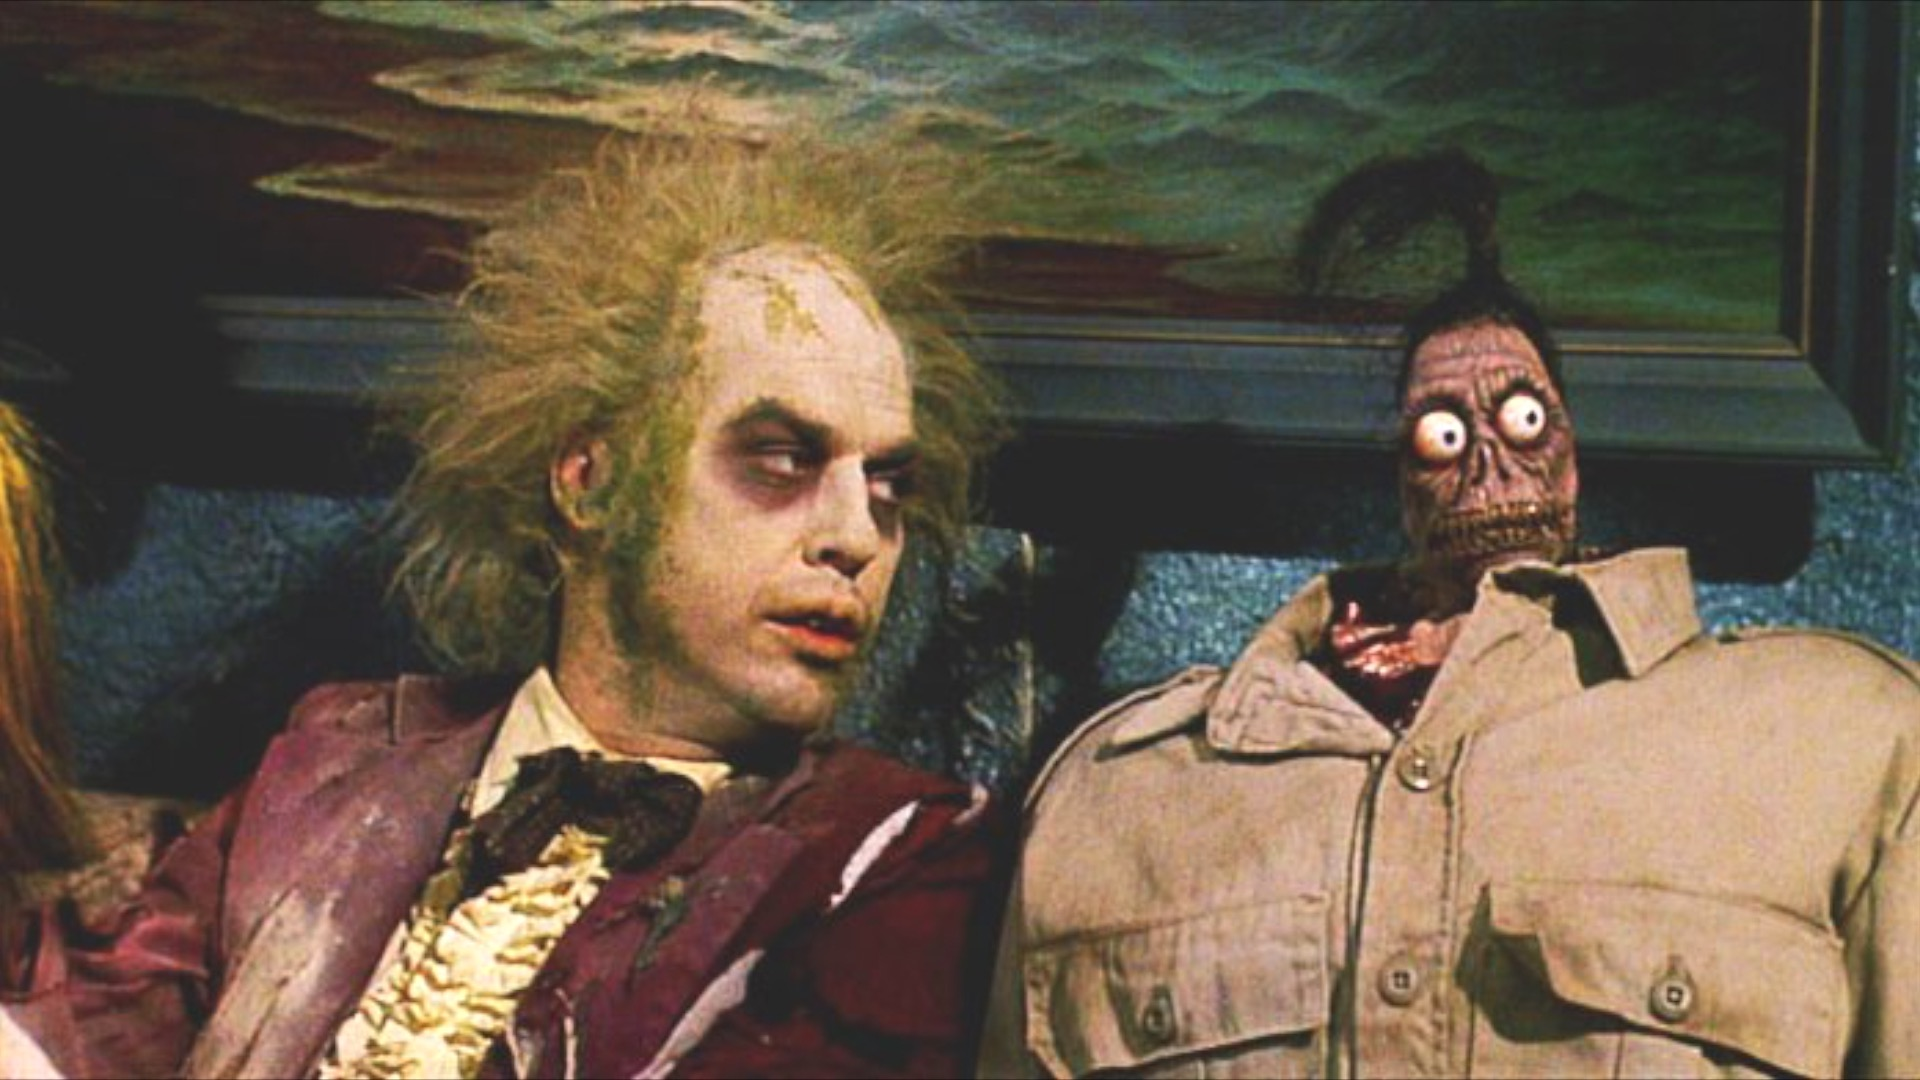 Beetlejuice facts